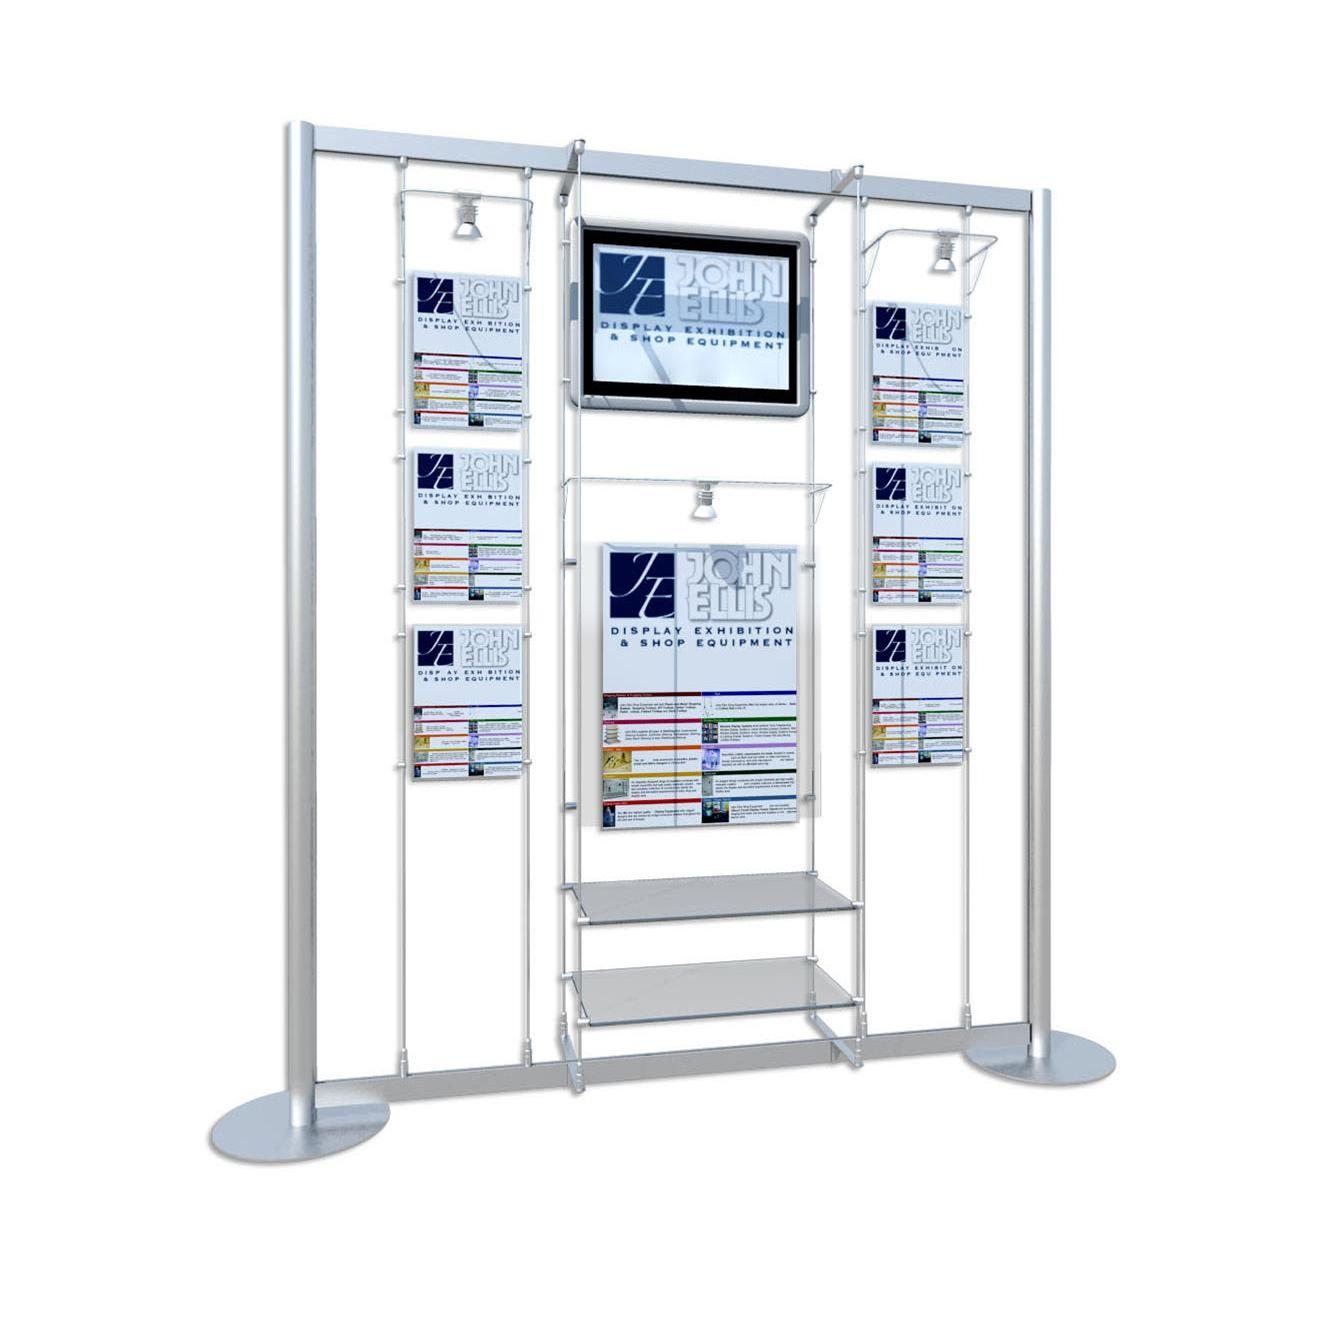 Freestanding Digital Screen / A4 & A2 Poster Holders with Lights / 2 x Glass Shelves